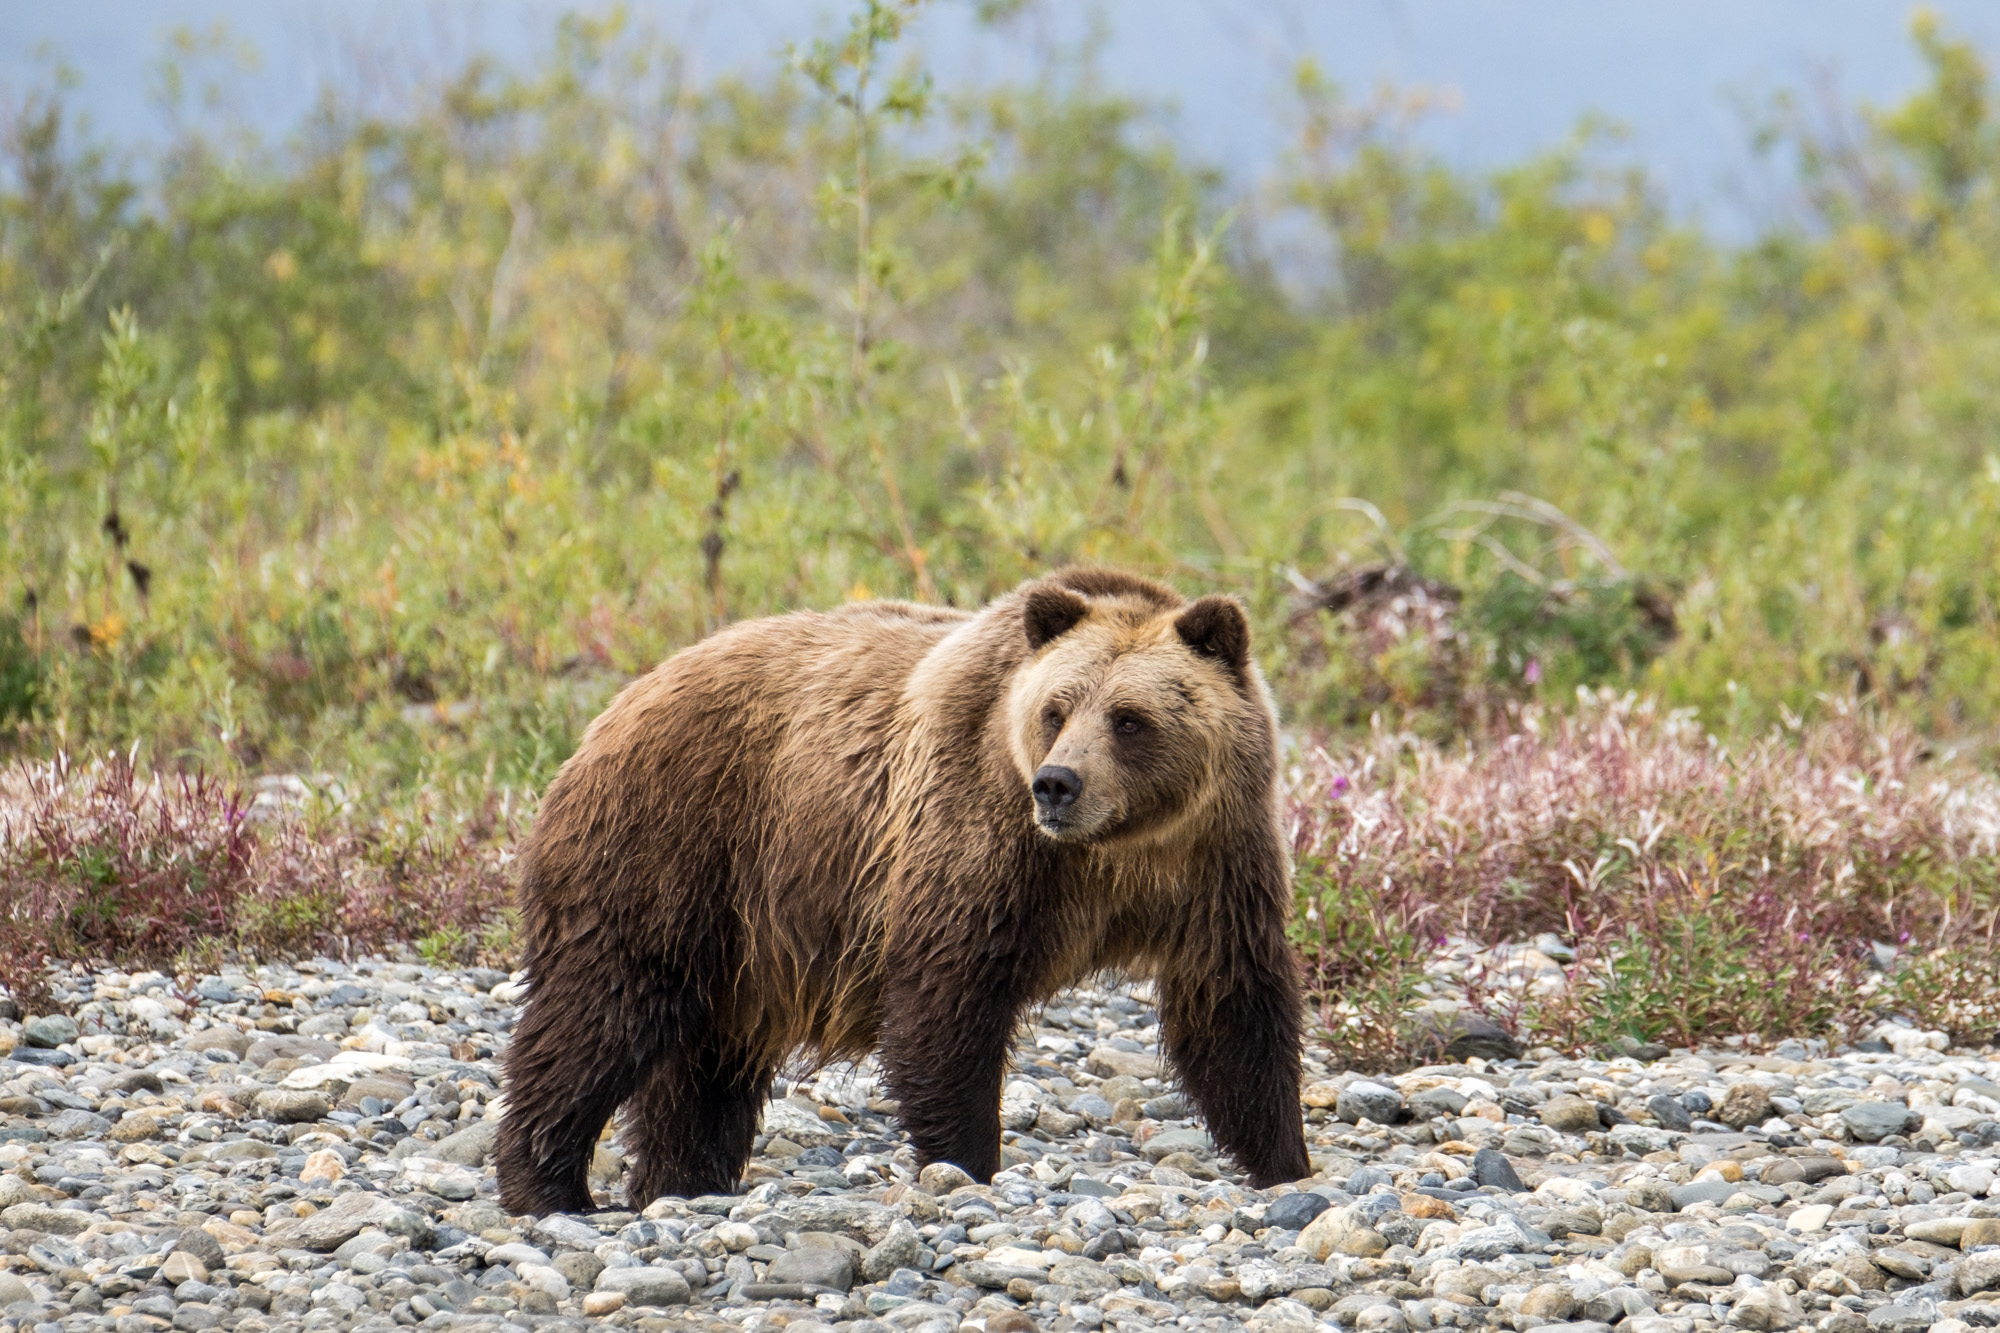 Grizzly bear in Gates of the Arctic in Alaska.